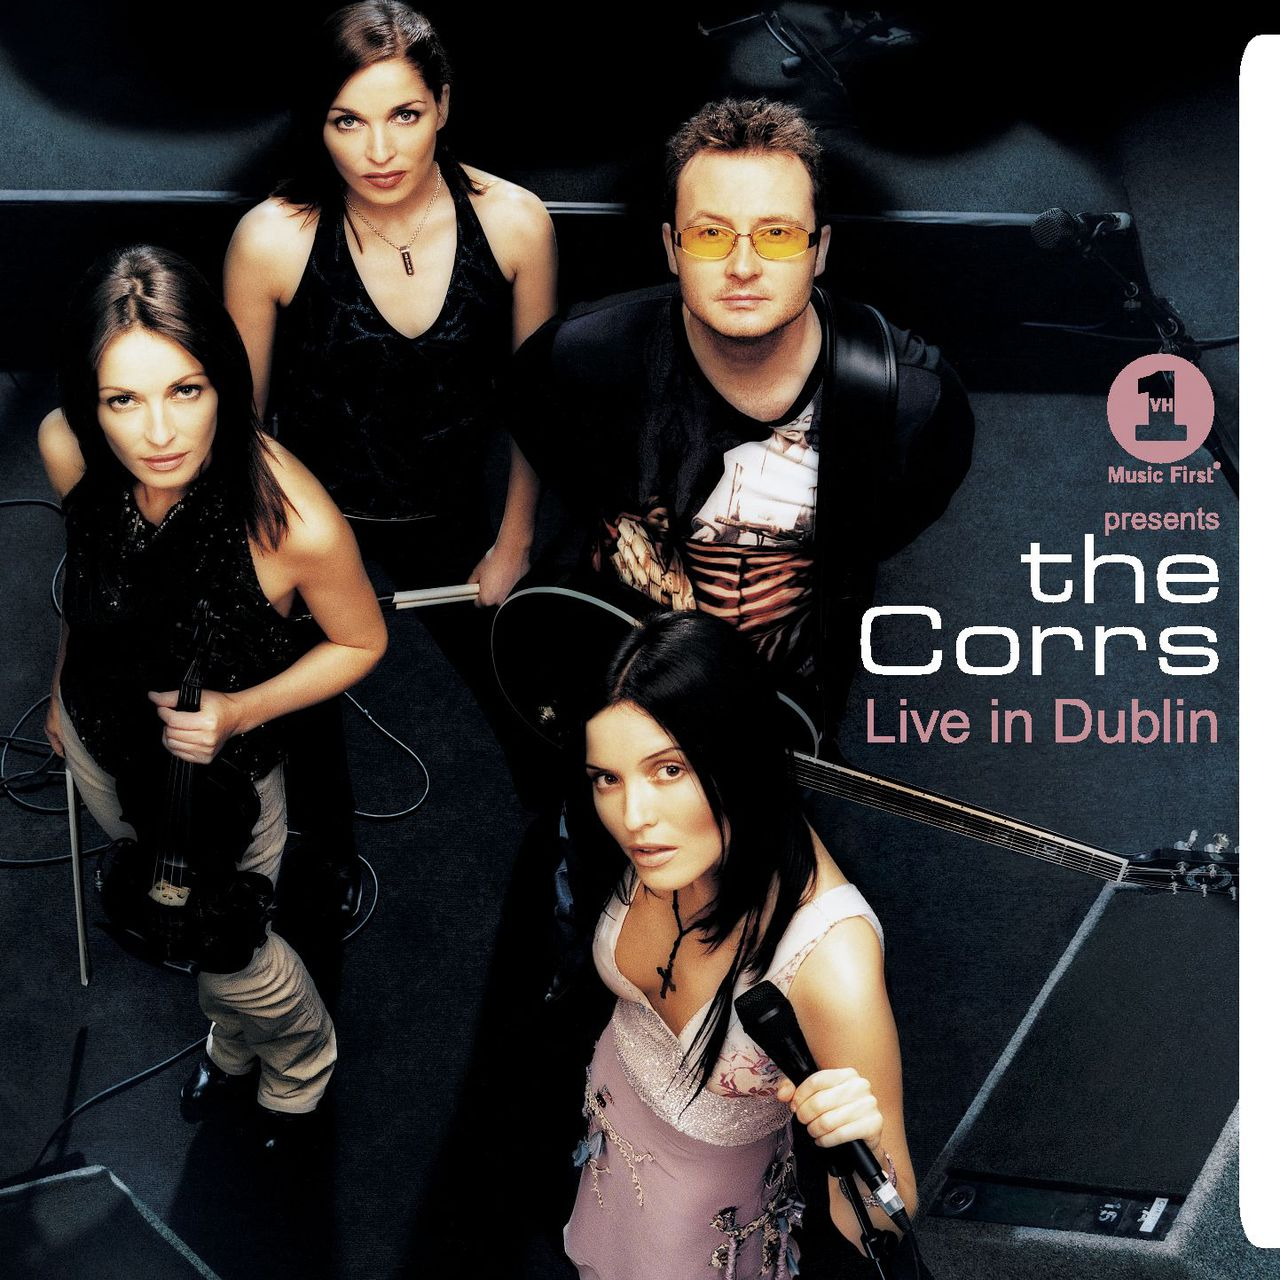 The Corrs Live in Dublin (2002)